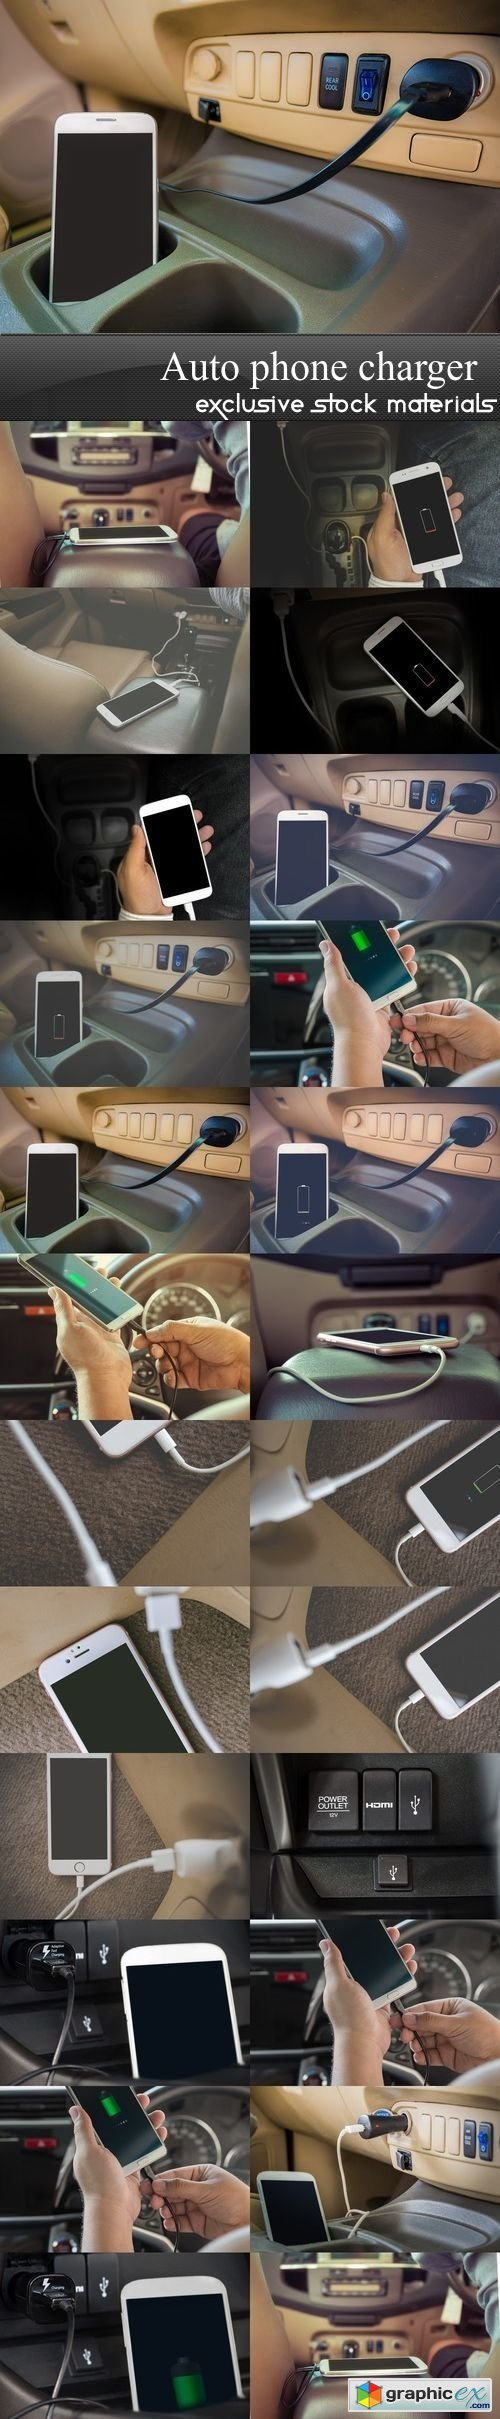 Auto phone charger - 24 UHQ JPEG